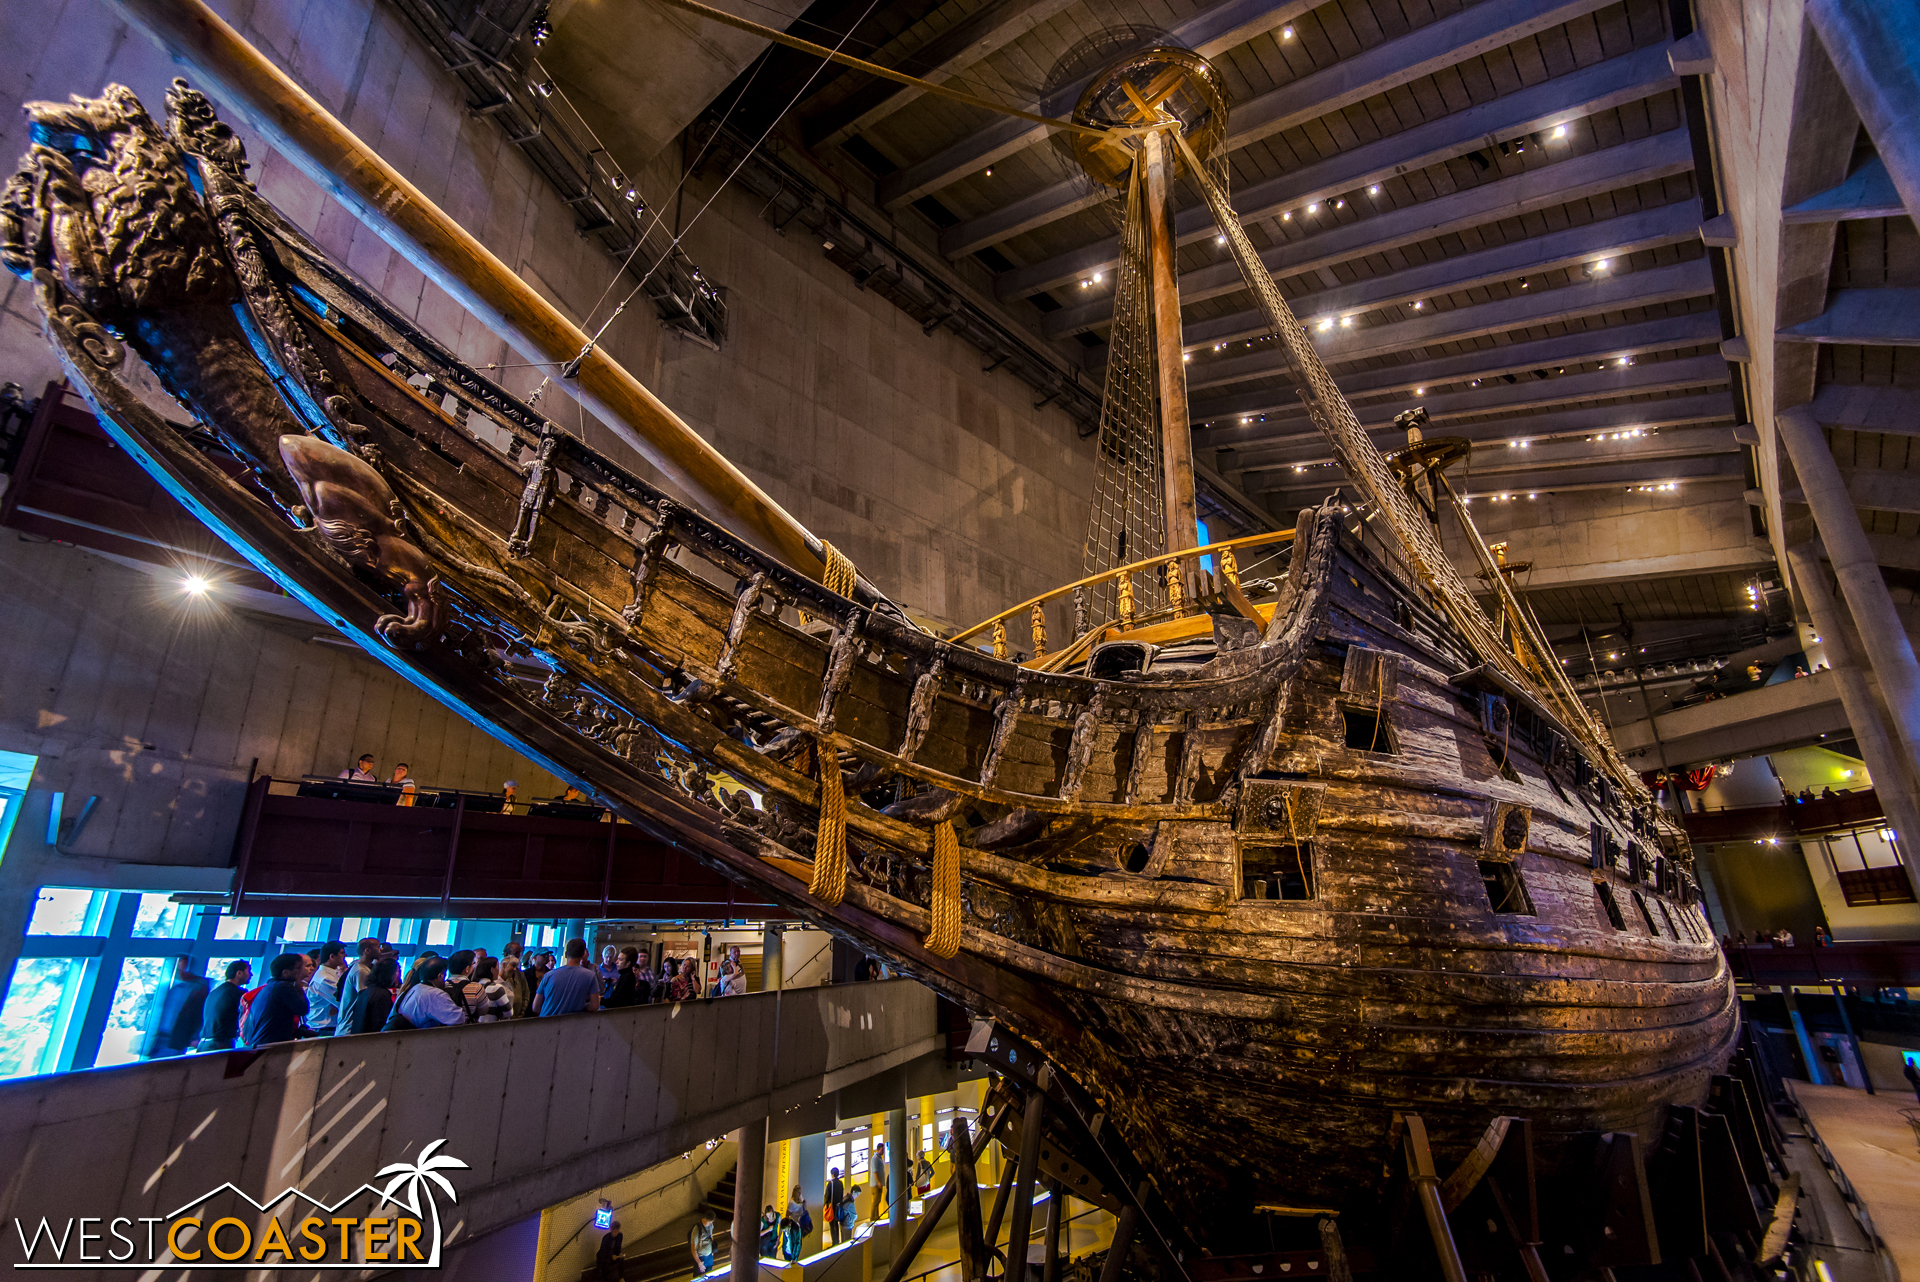 The most visited museum in Scandinavia, the Vasa Museum focuses on the  Vasa , the only almost-fully intact 17th century ship ever salvaged, which sank on her maiden voyage (call it Sweden's  Titanic ).